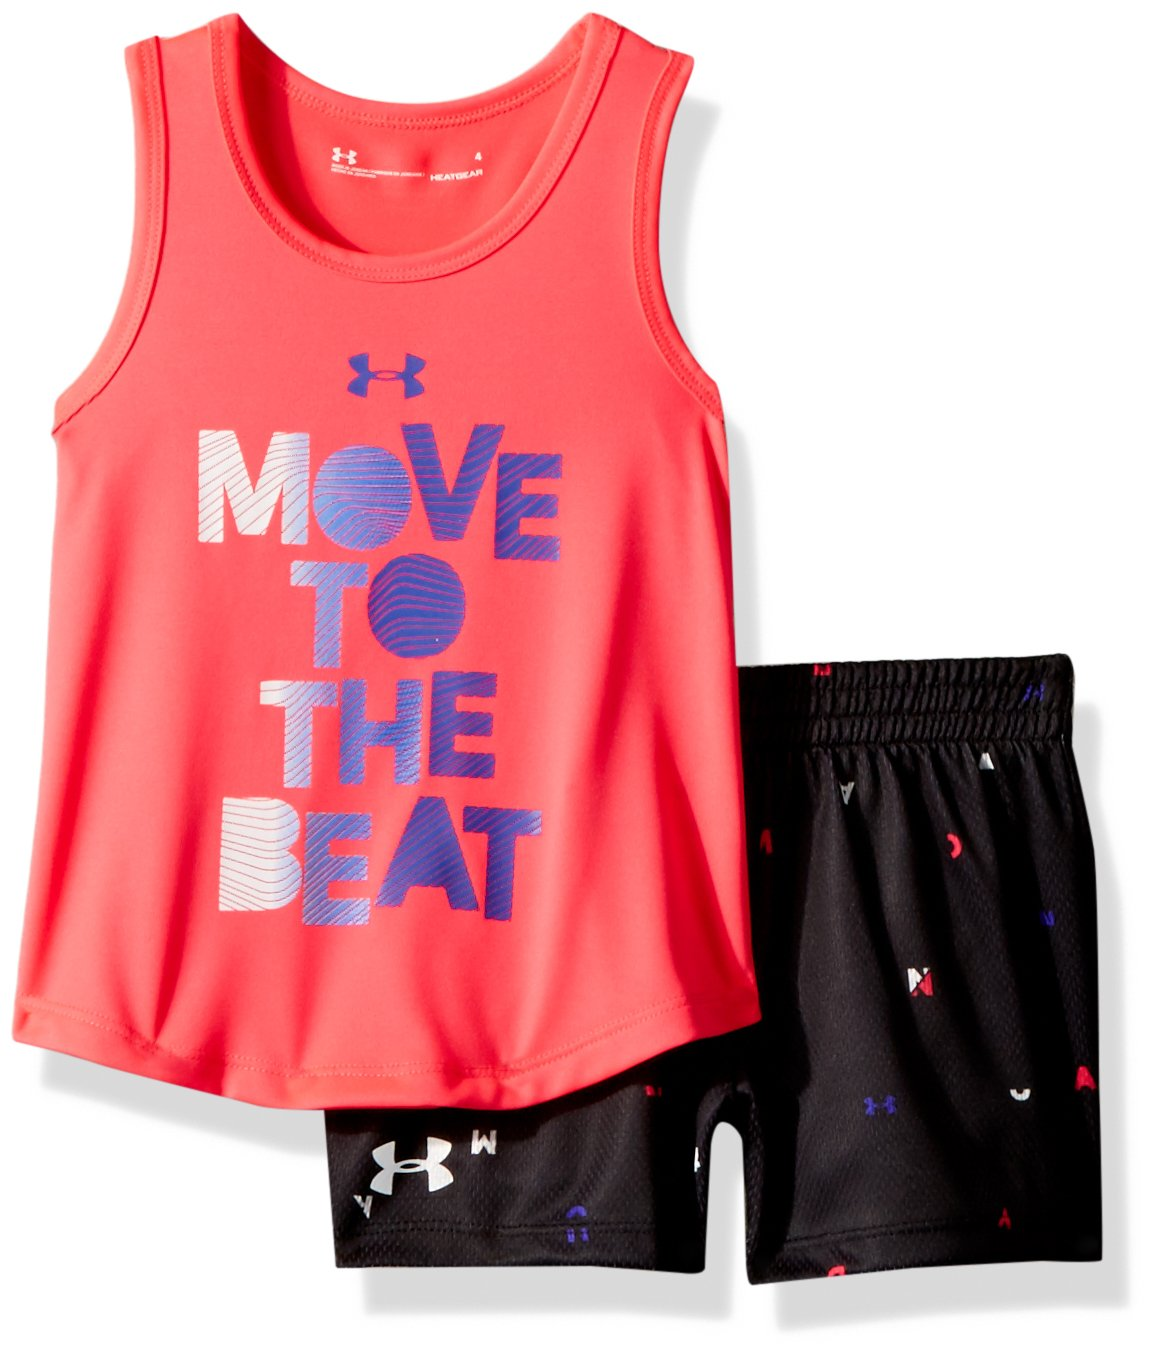 1f7084f732bd1 Under Armour Girls' Toddler UA Tank and Short Set, Penta Pink, 2T